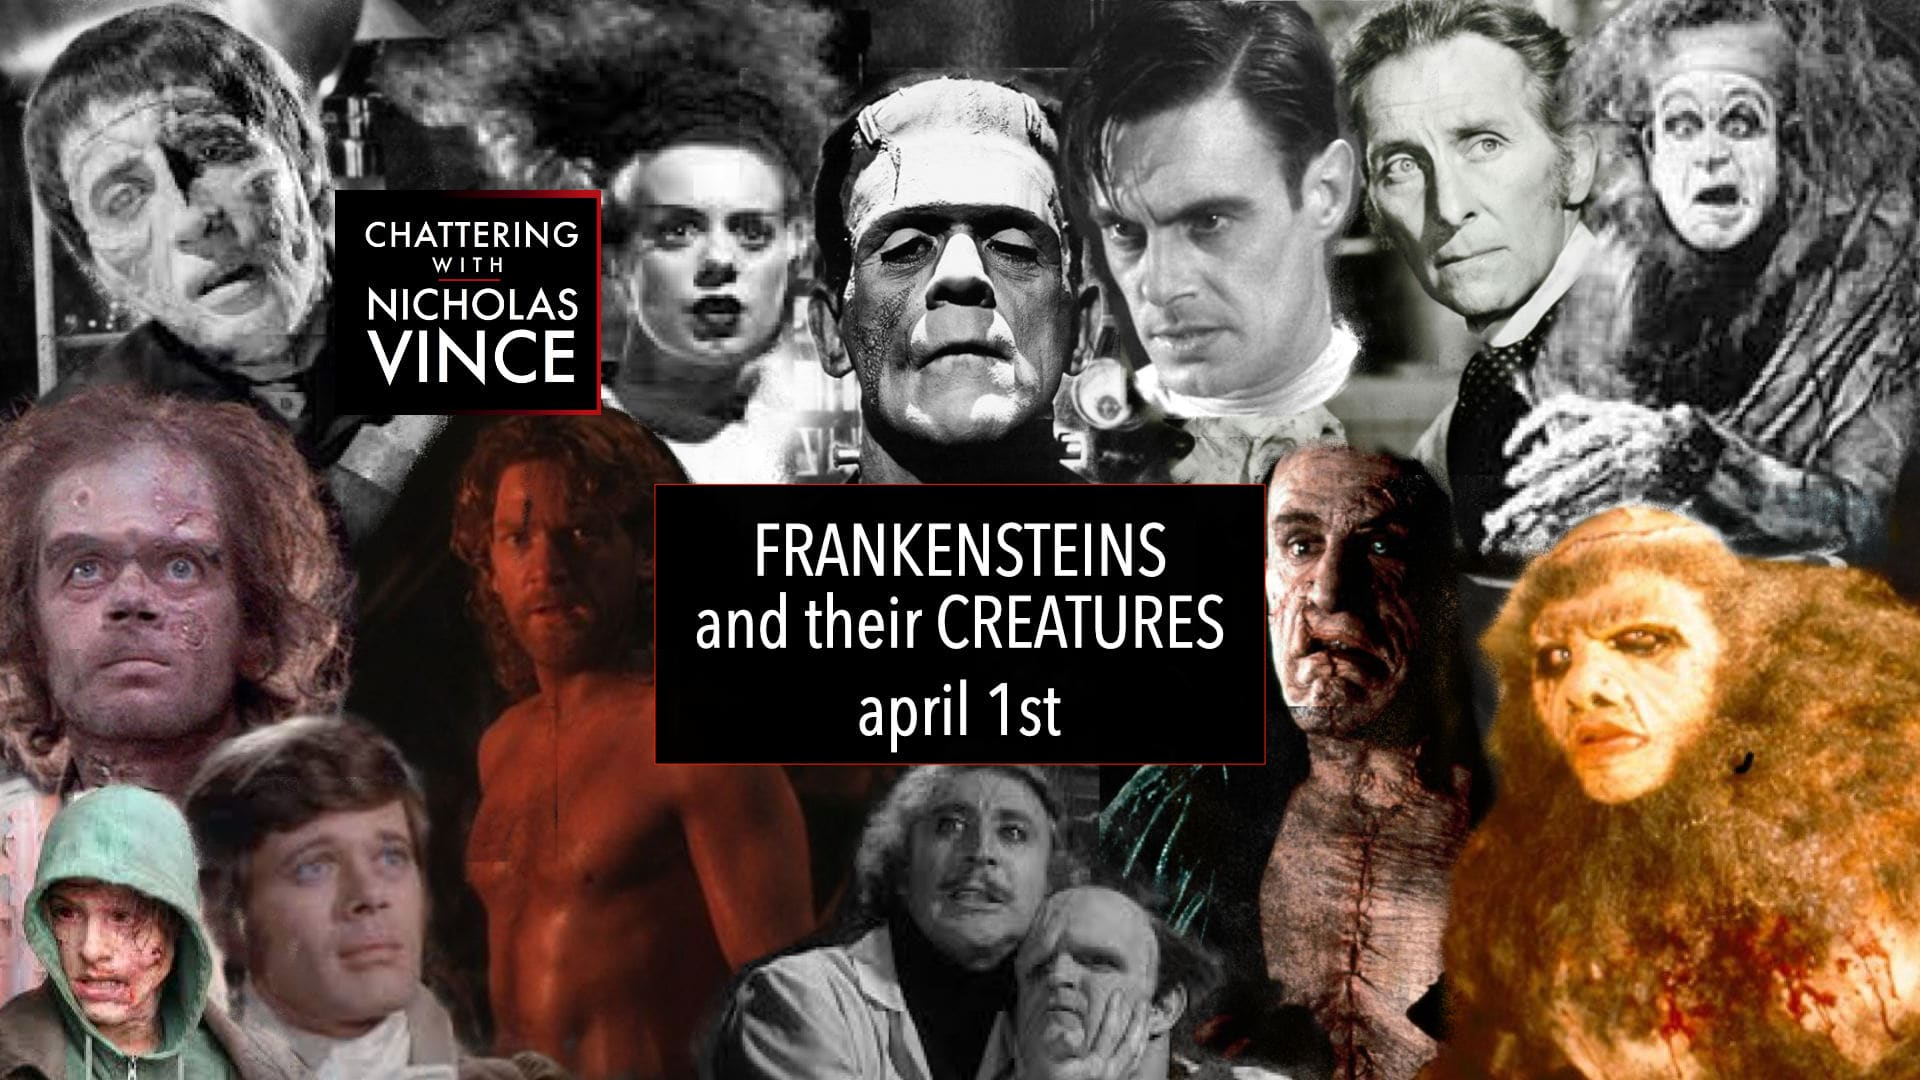 Chattering about Frankensteins and their Creatures